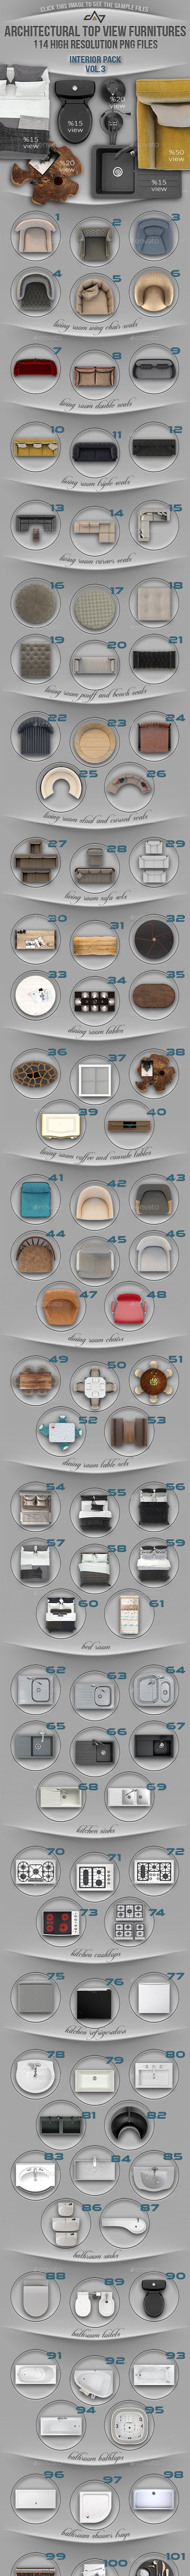 114 Top View Furnitures for 3D Floor Plans Vol 3 - Miscellaneous Product Mock-Ups